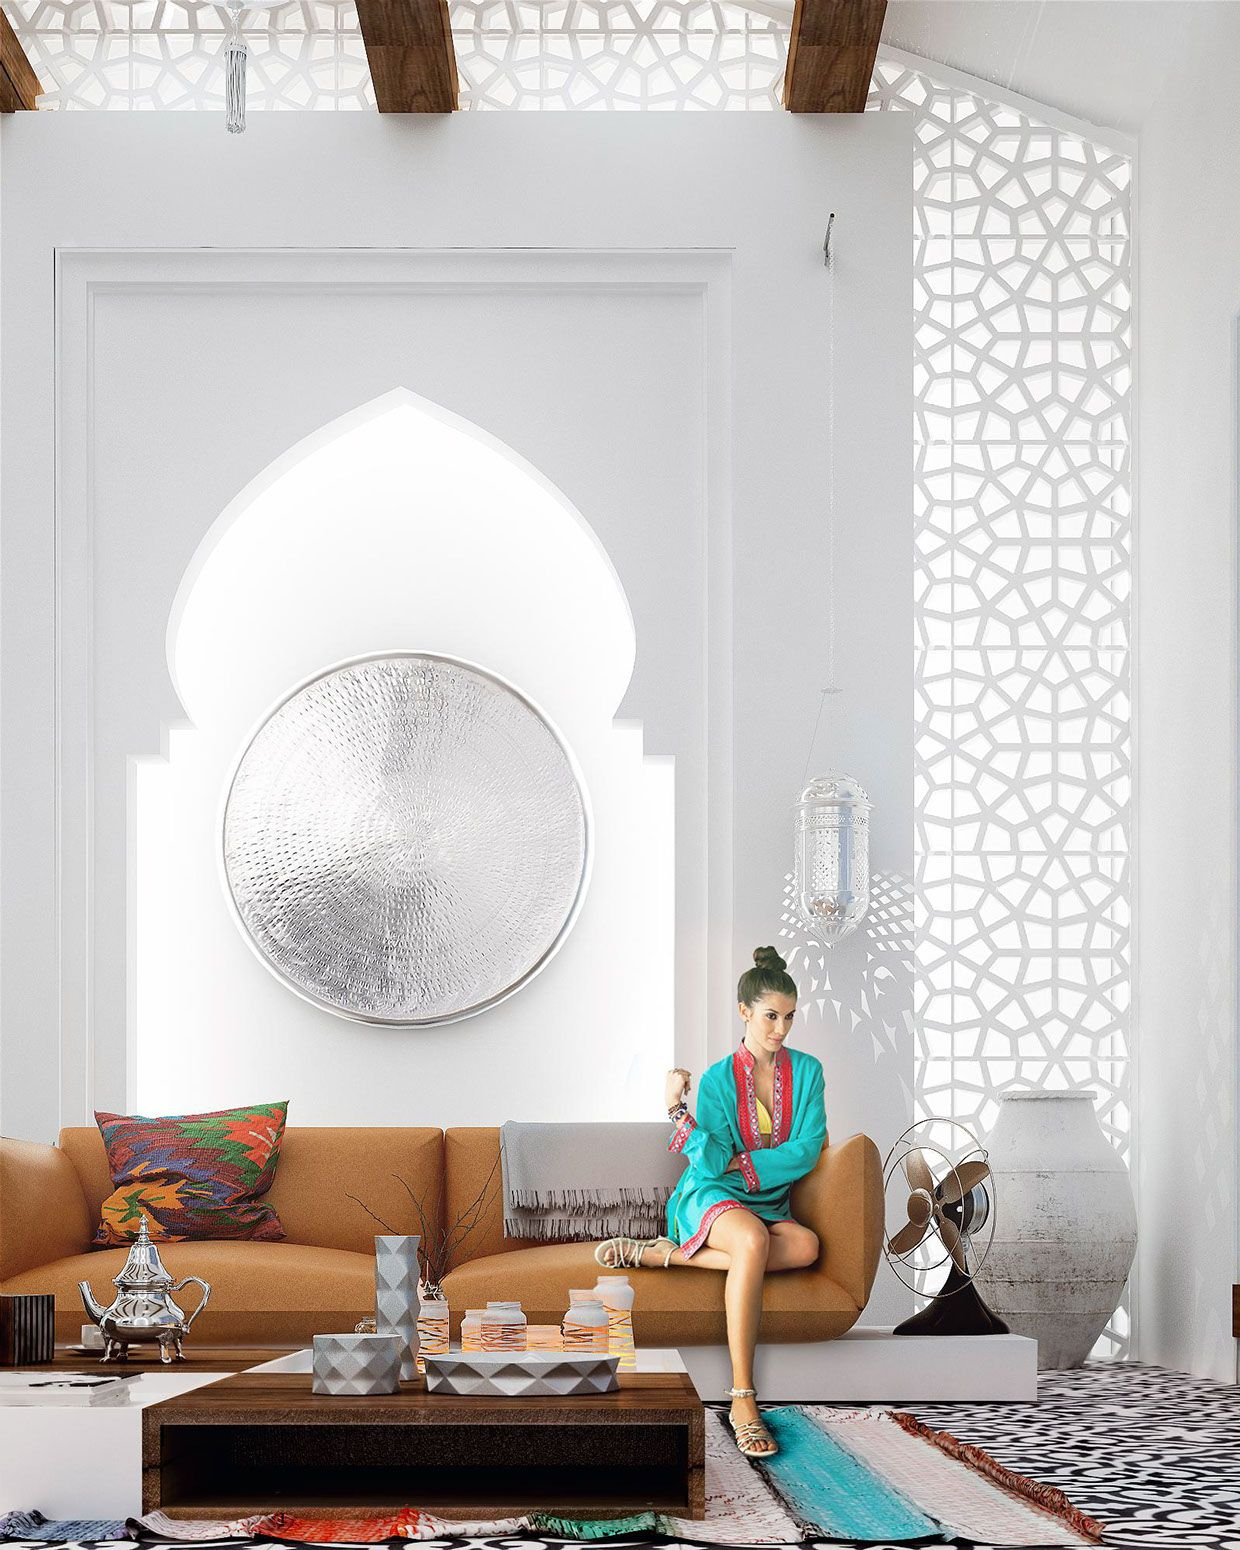 Best 25+ Moroccan Living Rooms Ideas On Pinterest  Moroccan Interiors,  Modern Moroccan Decor And Moroccan Room